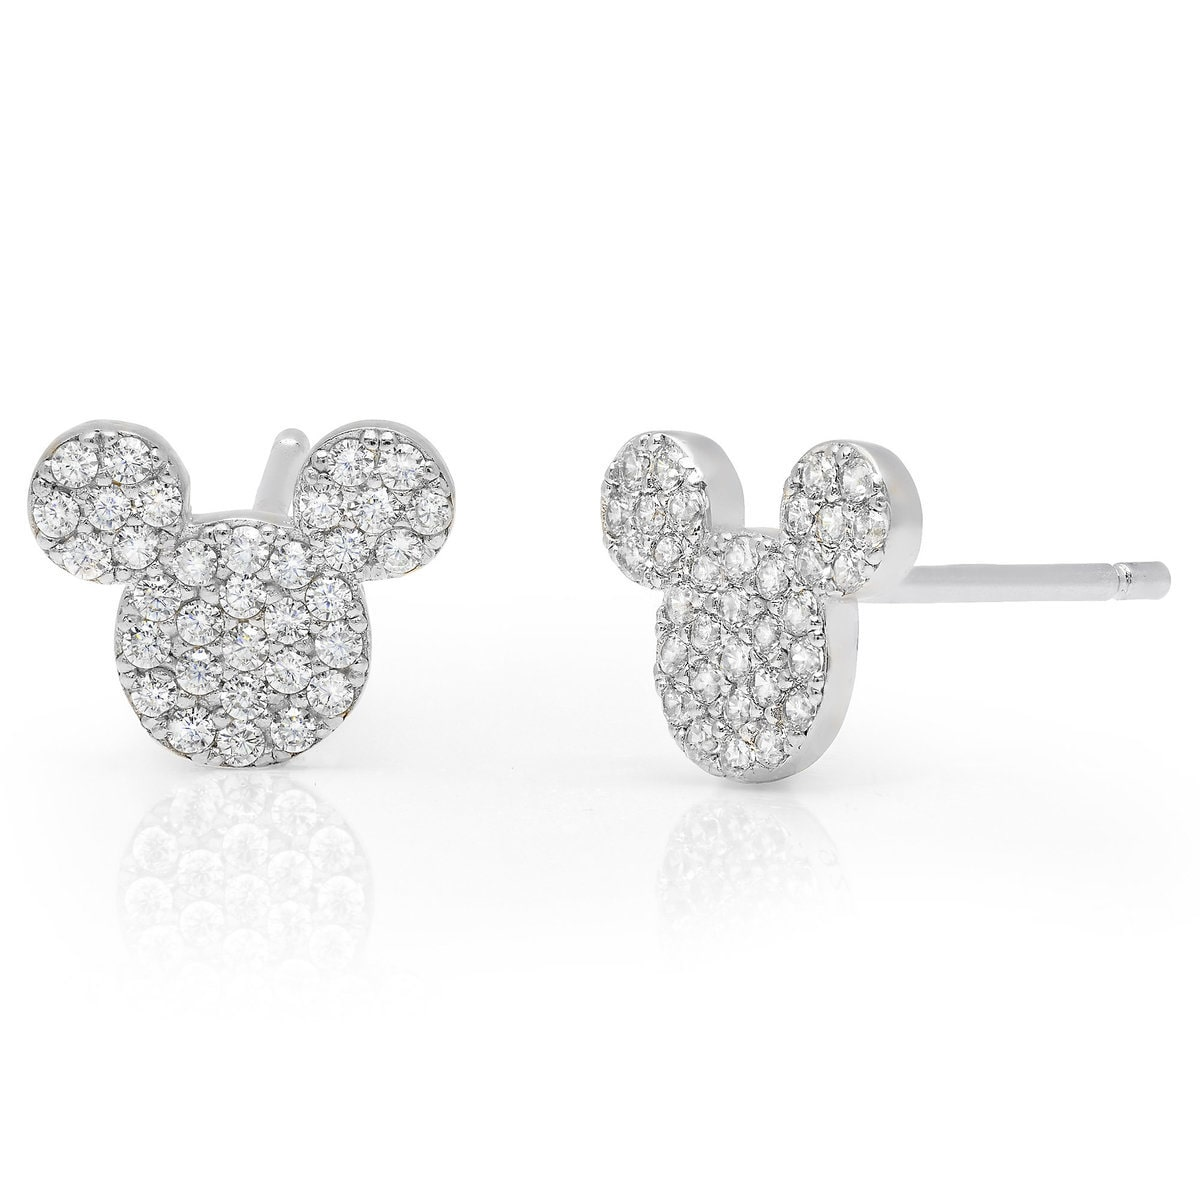 nile gold blue tw ct phab main stud earrings detailmain in diamond lrg white